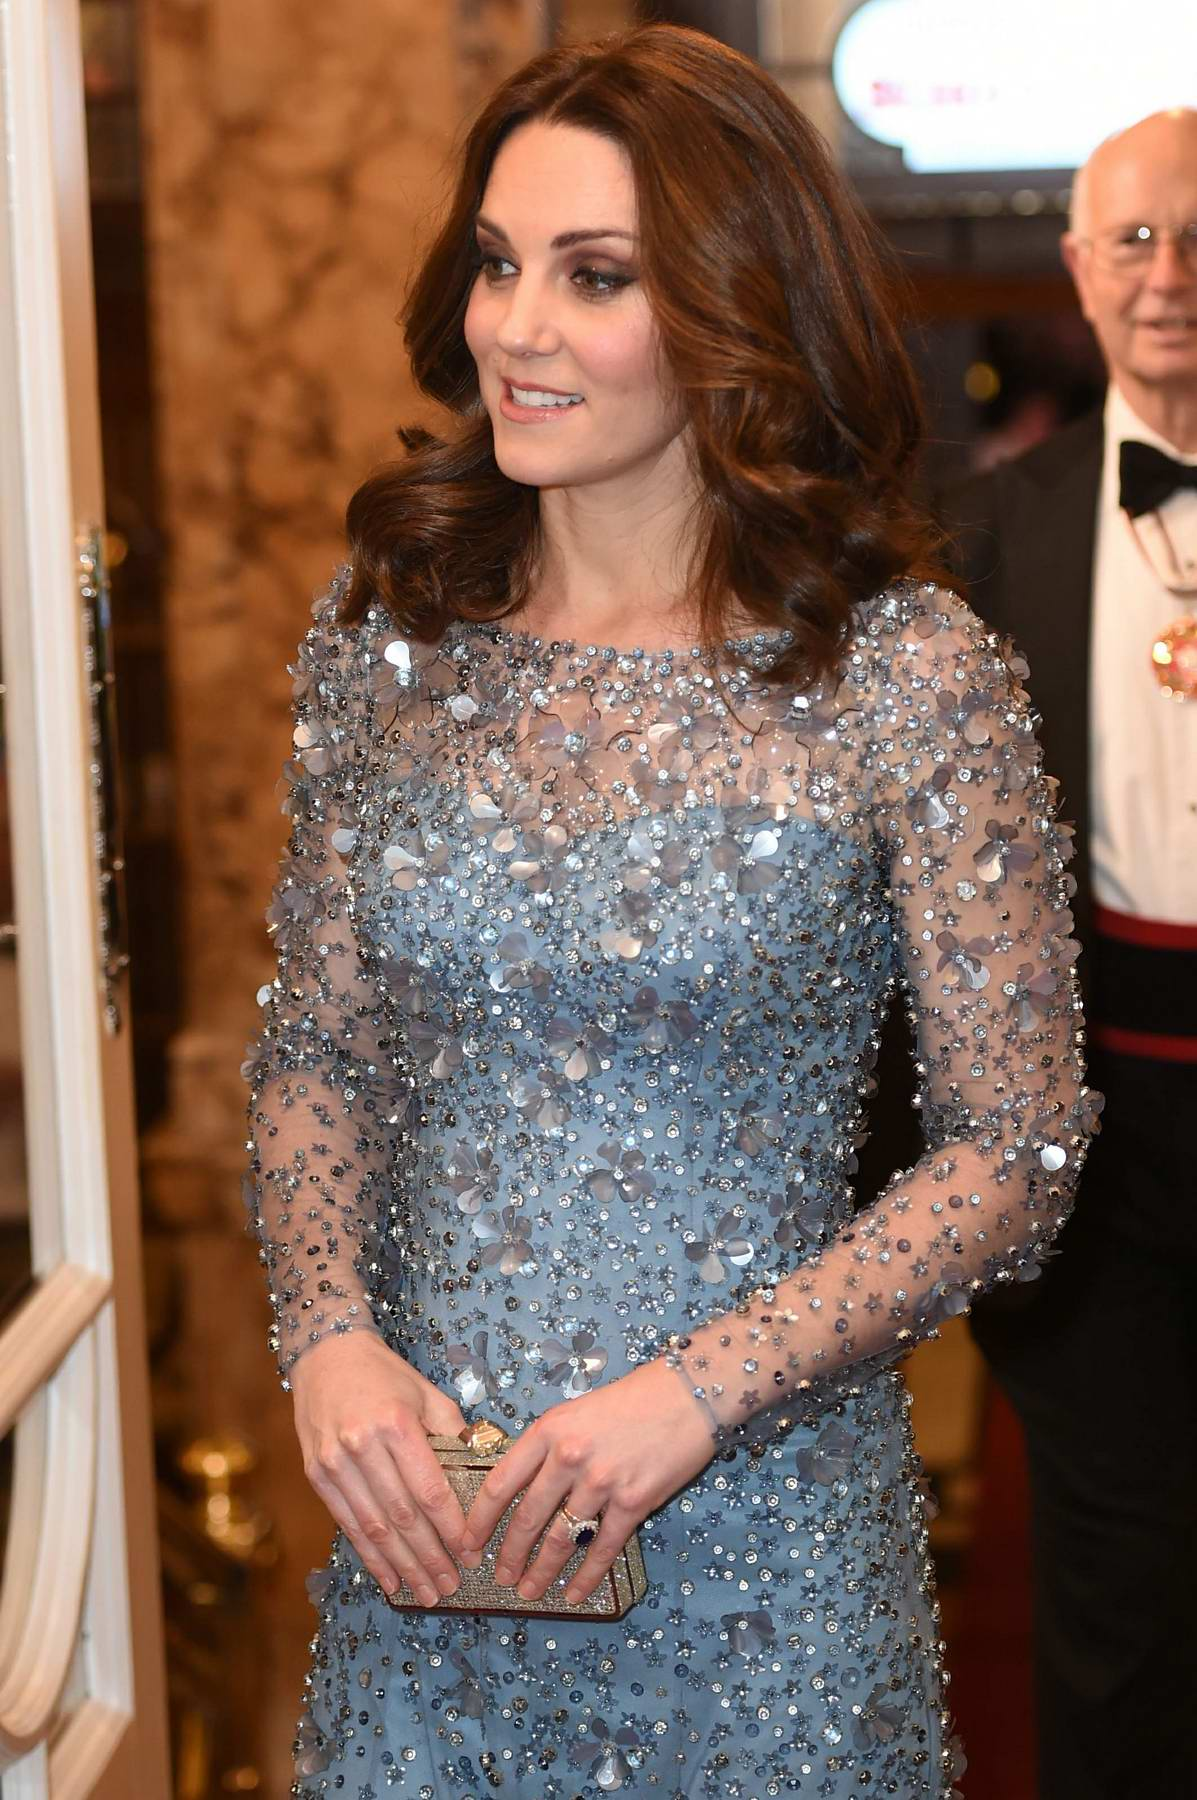 Kate Middleton attend the Royal Variety Performance at the Palladium Theatre in London